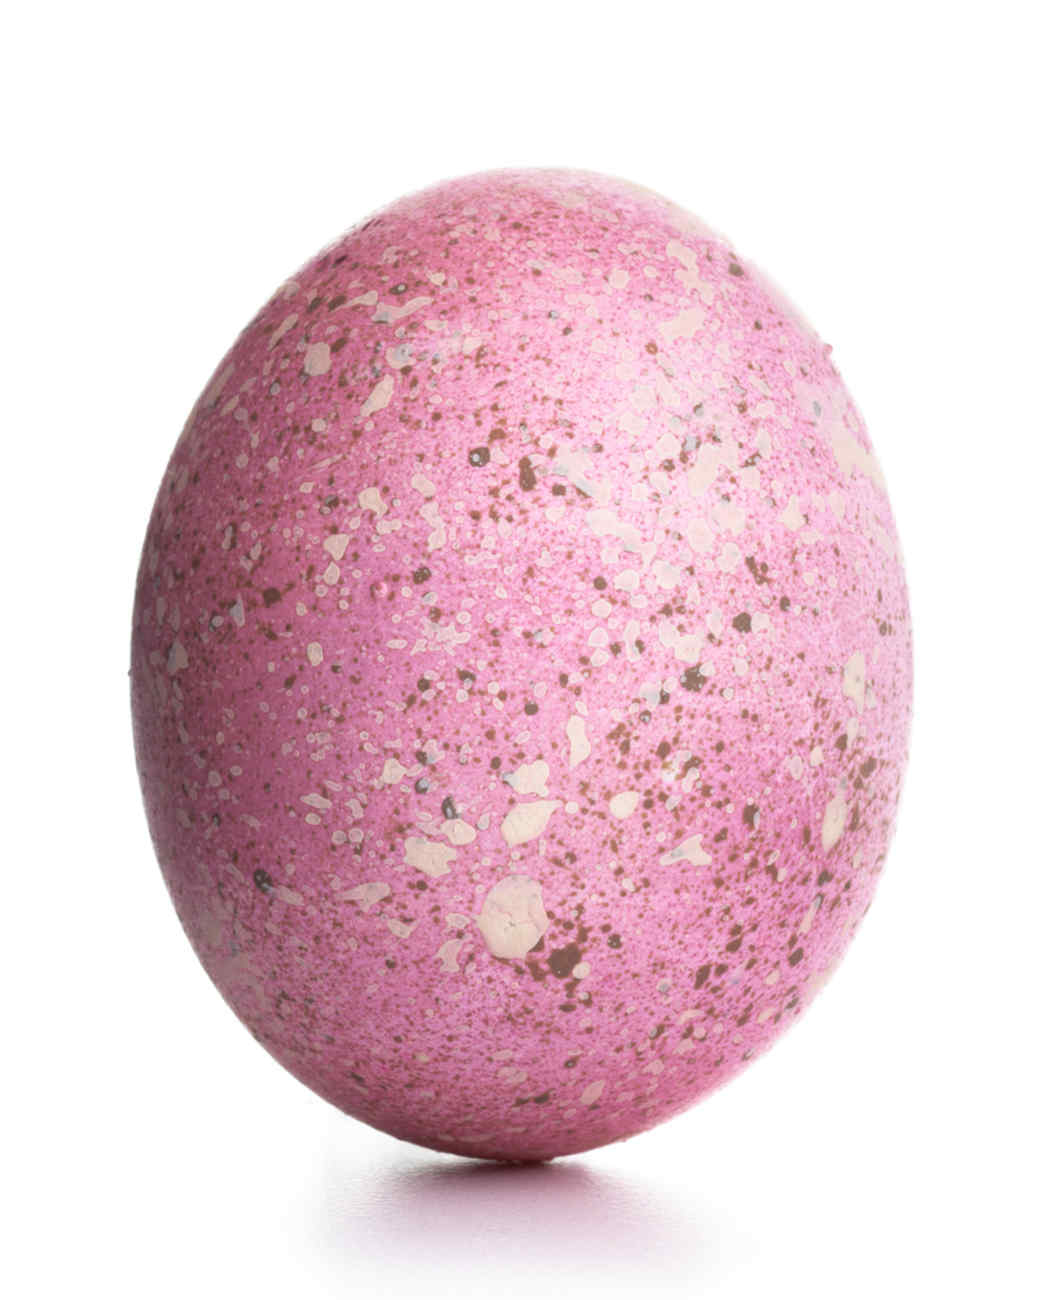 Speckled and Sponged Easter Egg Decorating Ideas | Martha